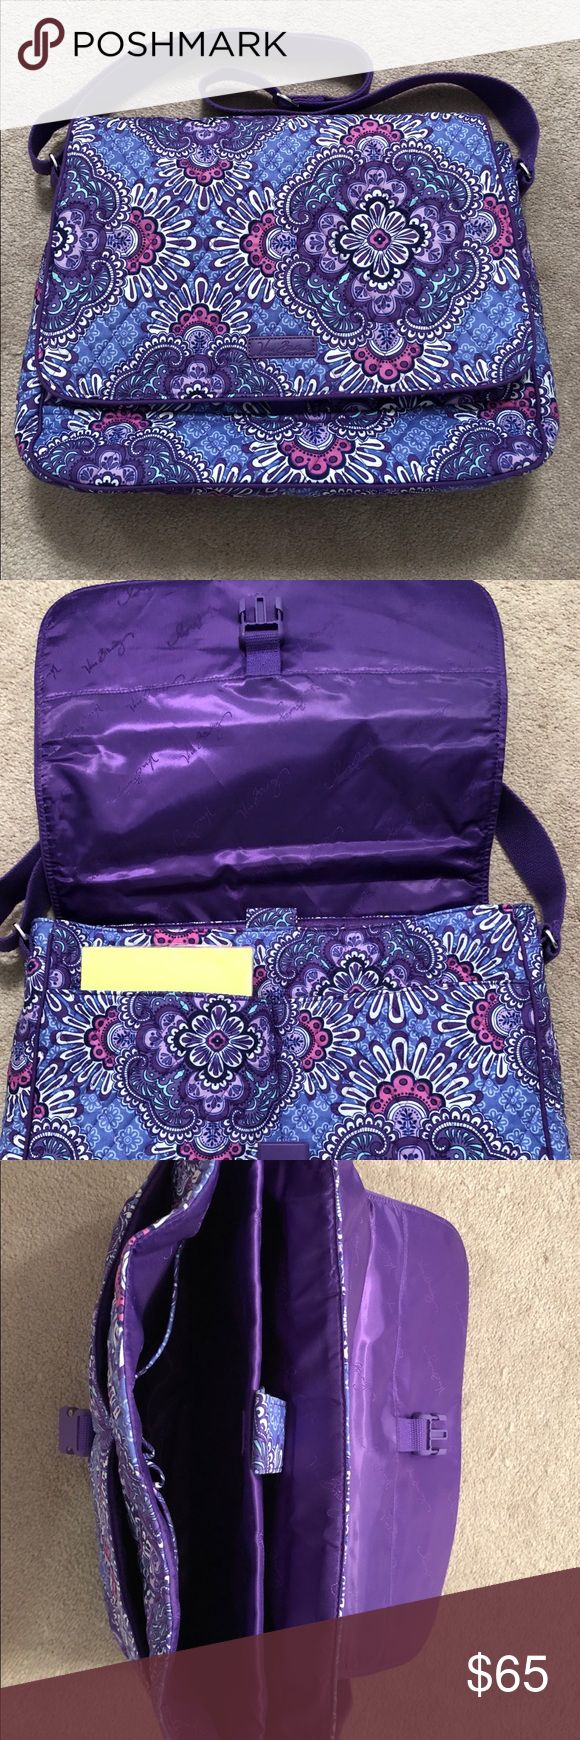 """Vera Bradley Laptop Messenger Lilac Tapestry - EUC Barely used (3x), 2017 crossbody Vera Bradley laptop messenger bag. Lightweight, water-repellant but super soft! Tons of pockets for organization, and storage. Held my 13.1"""" old school Mac with plenty of room to spare in the laptop sleeve. Also held my tablet, pens, notebook, index cards etc. Fold over flap closes with a click clasp for extra security! Strap is adjustable soft purple material. Loved this bag, just didn't work out for me…"""